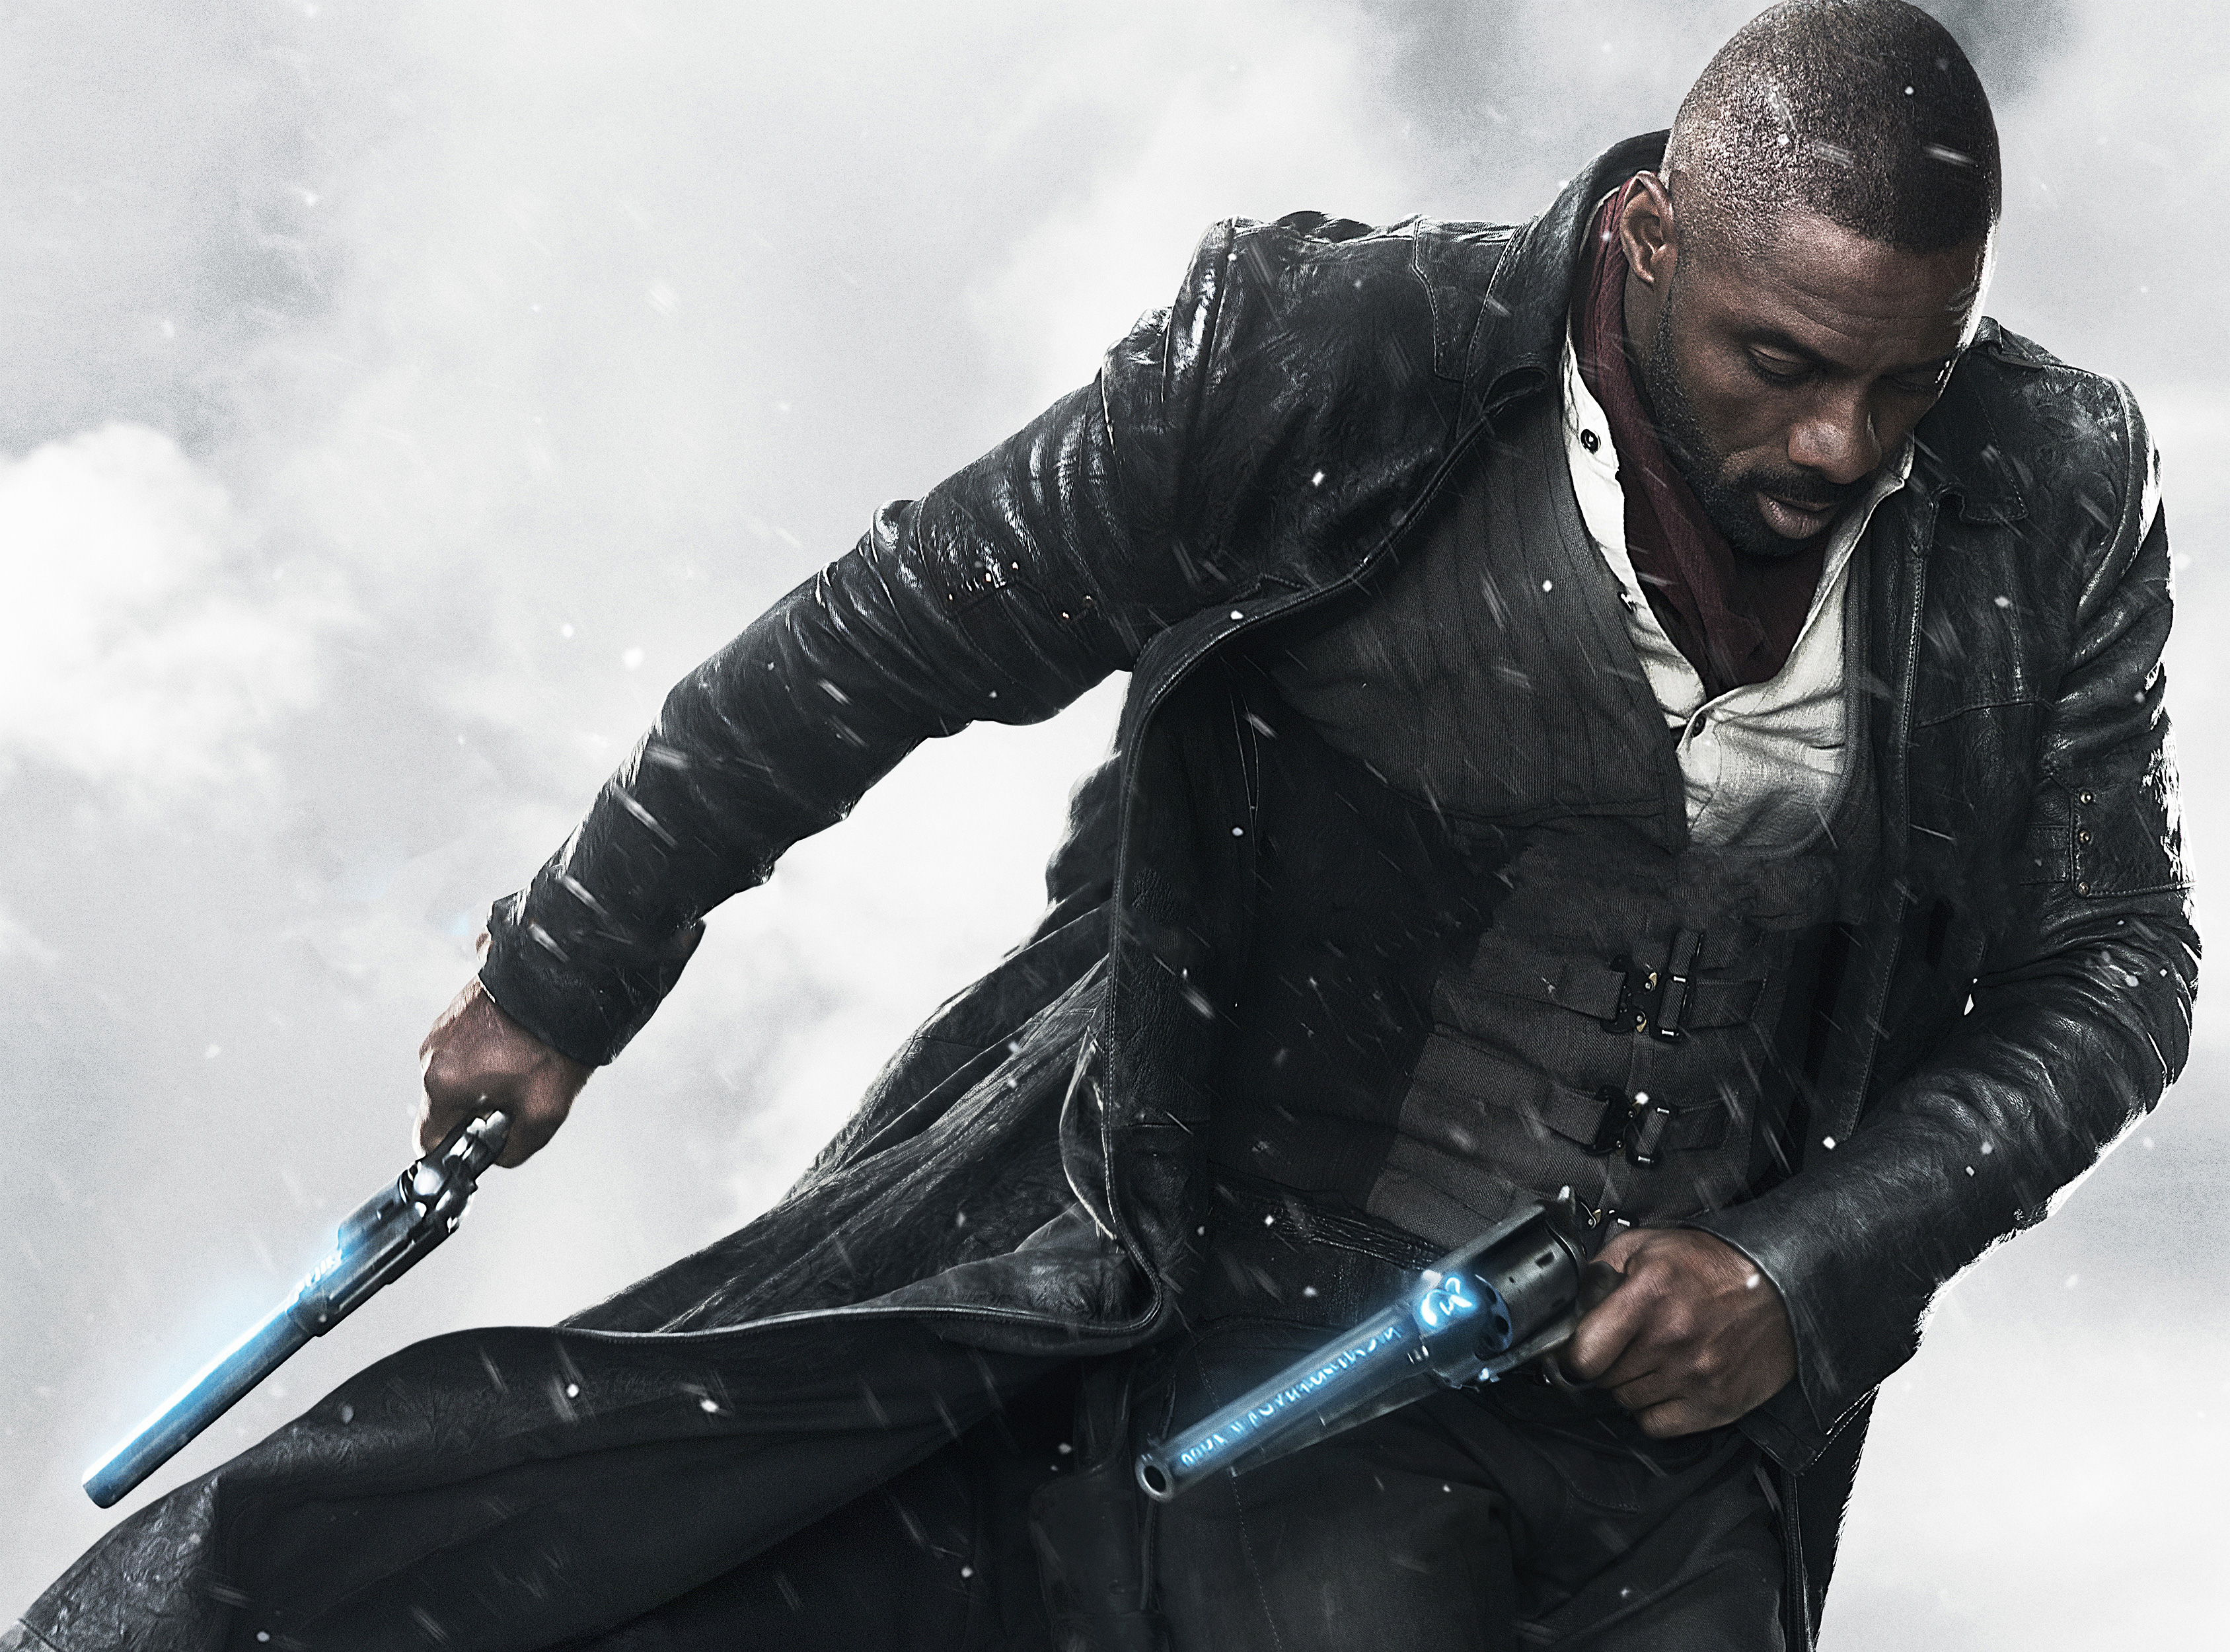 d20 - Page 3 Idris-elba-as-the-gunslinger-in-the-dark-tower-movie-4k-27